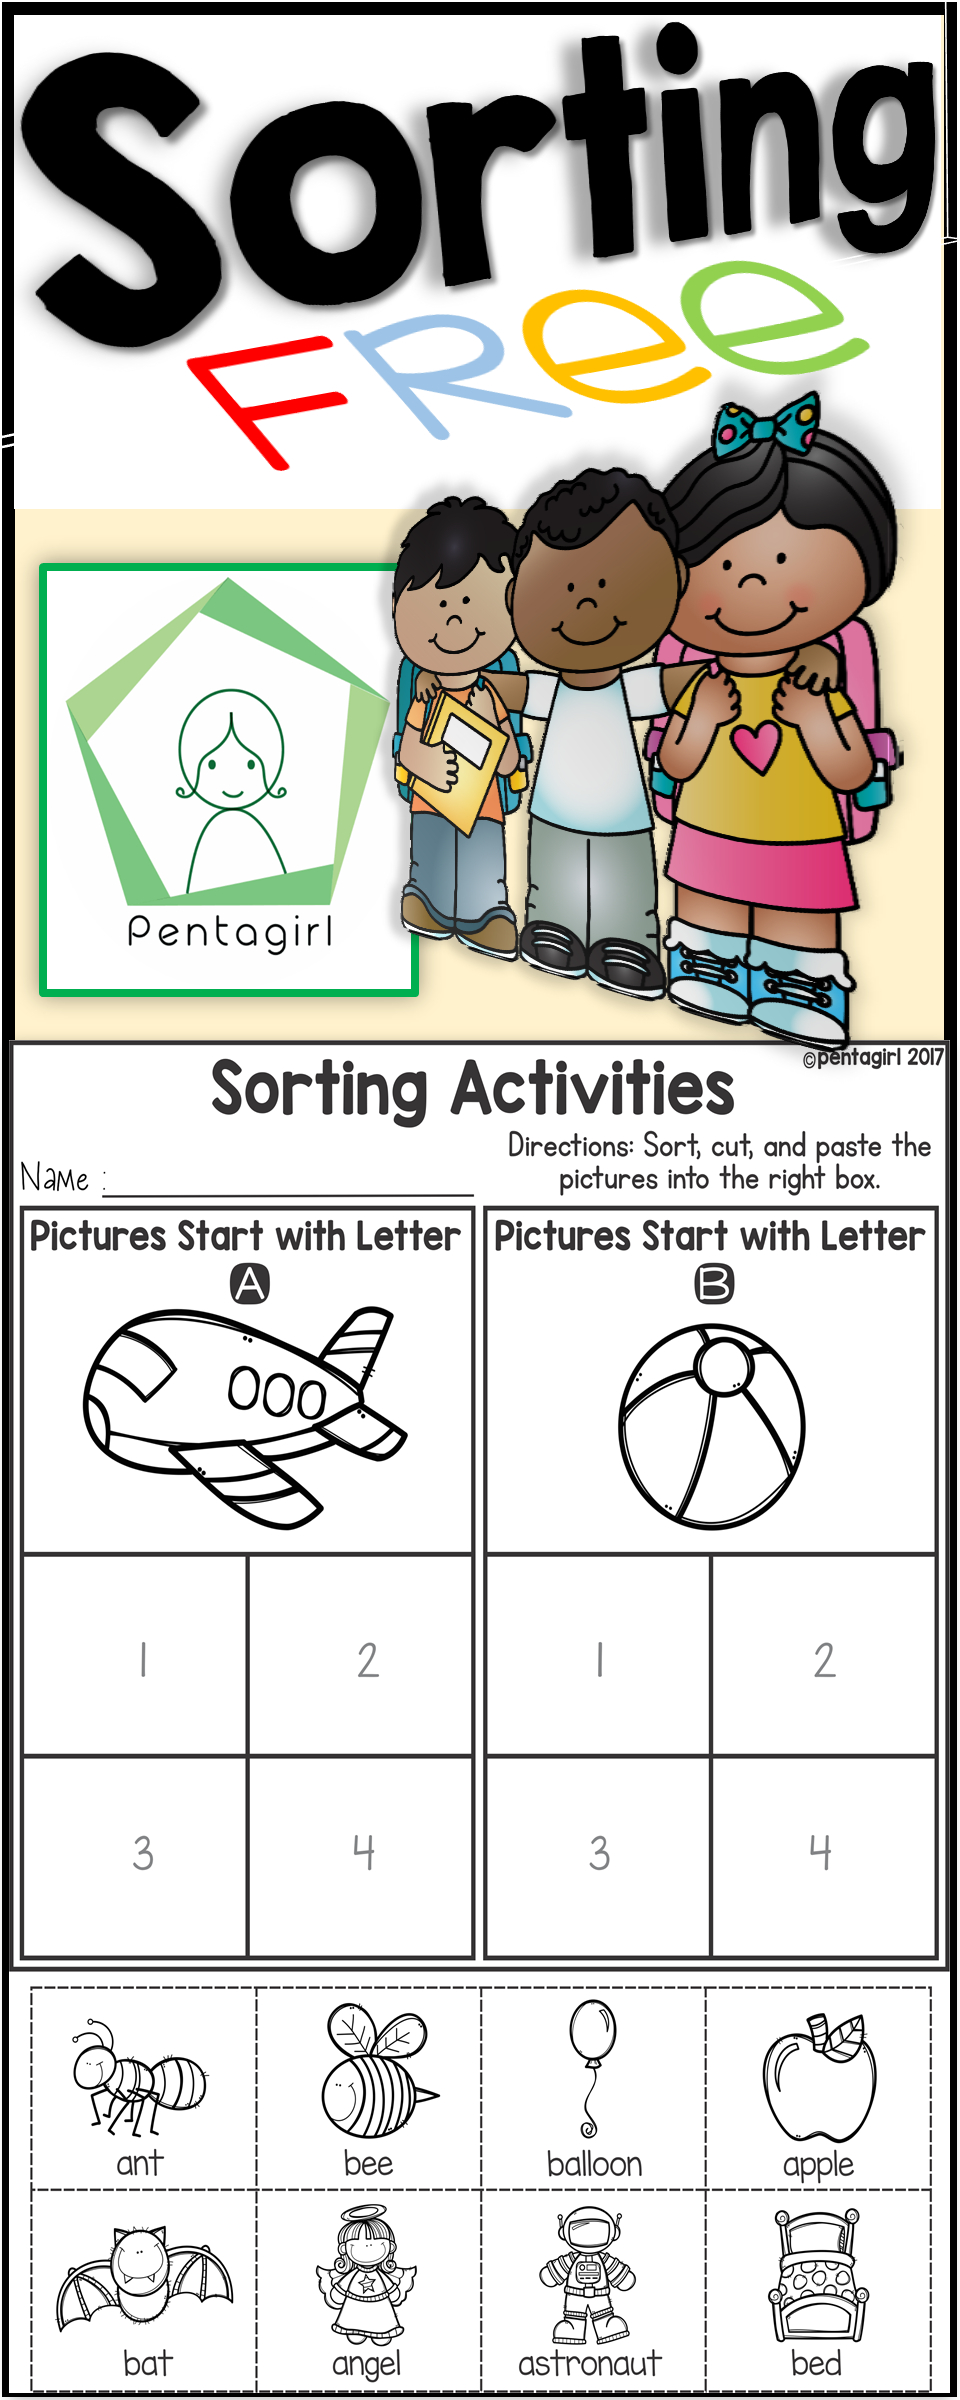 Free Sorting Activities Posters And Worksheets Alphabet A for Alphabet Sorting Worksheets